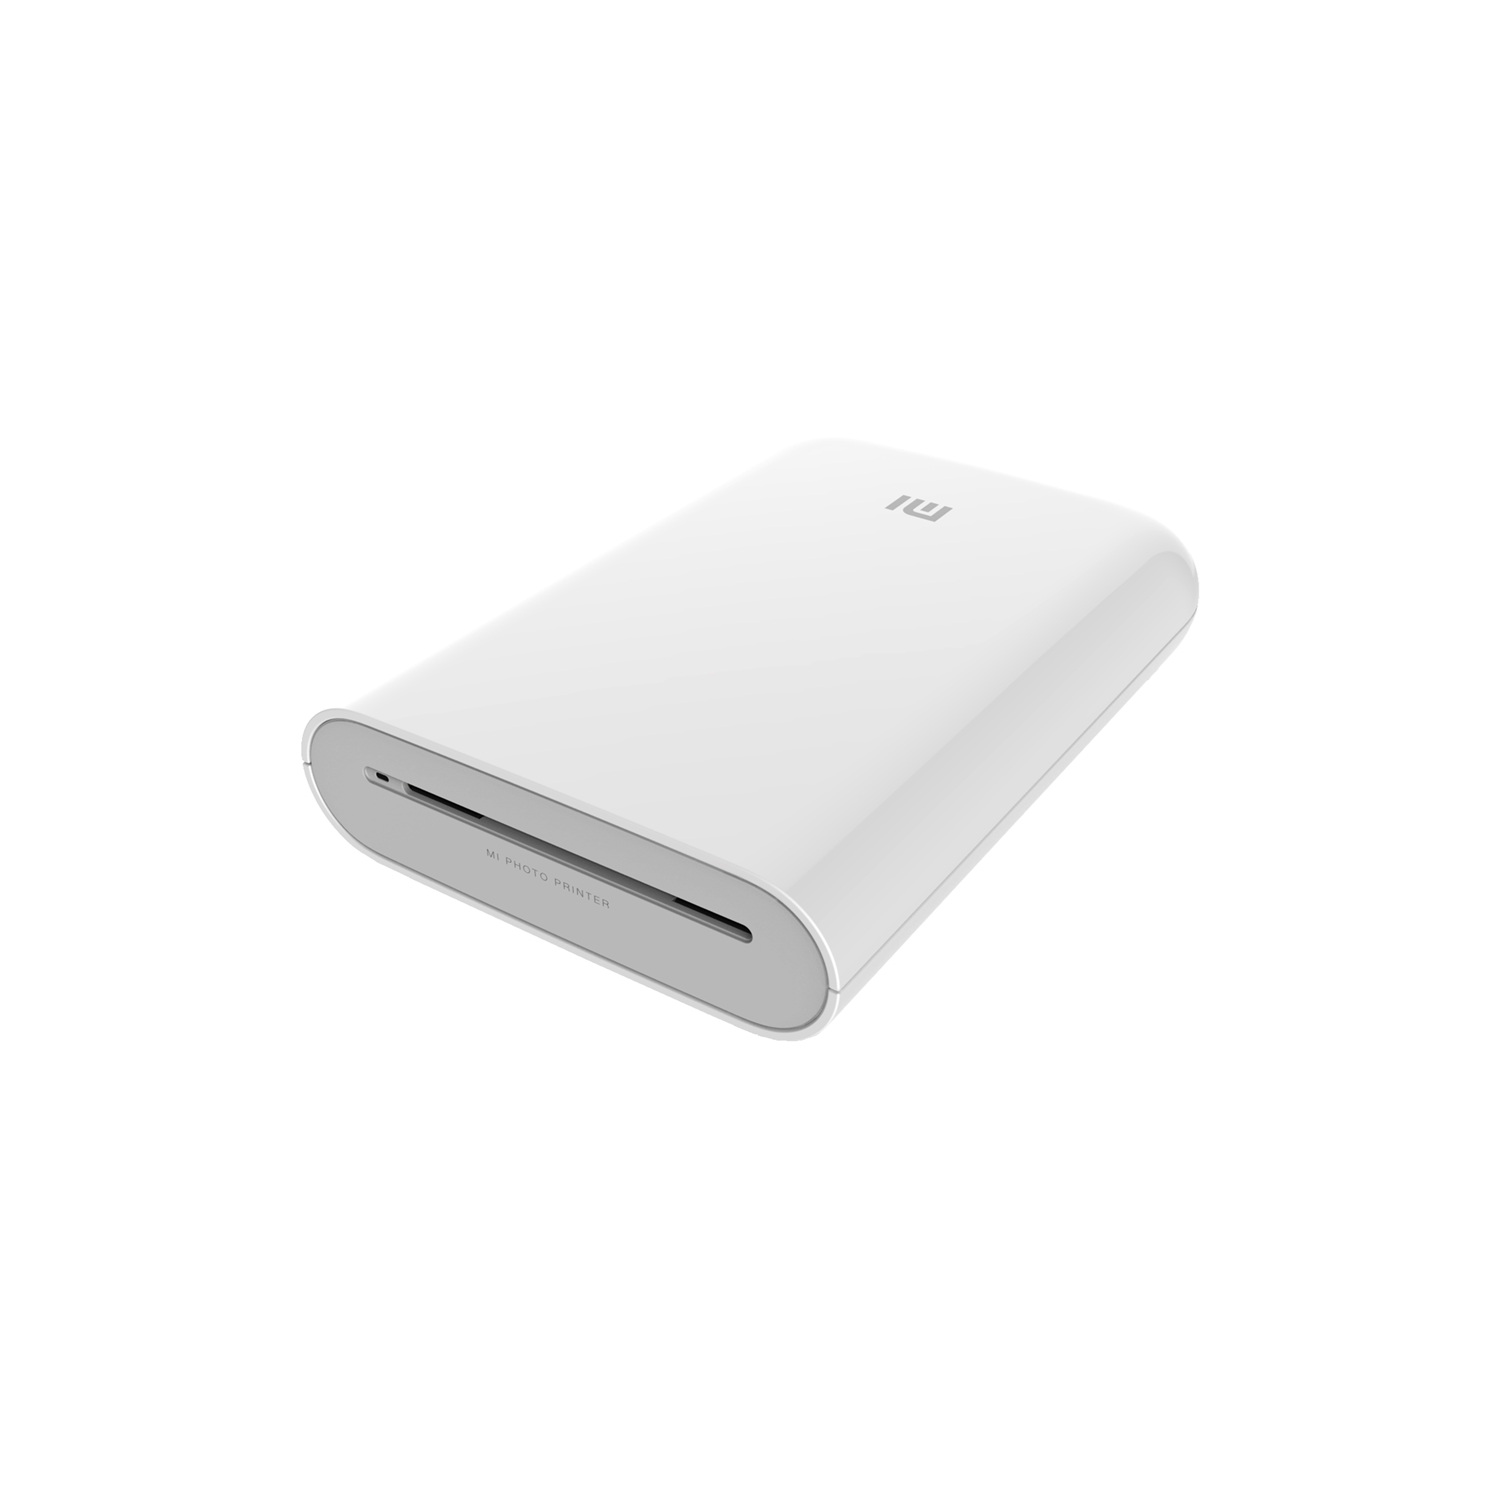 Xiaomi Mi Portable Photo Printer MKDDYJ01HT